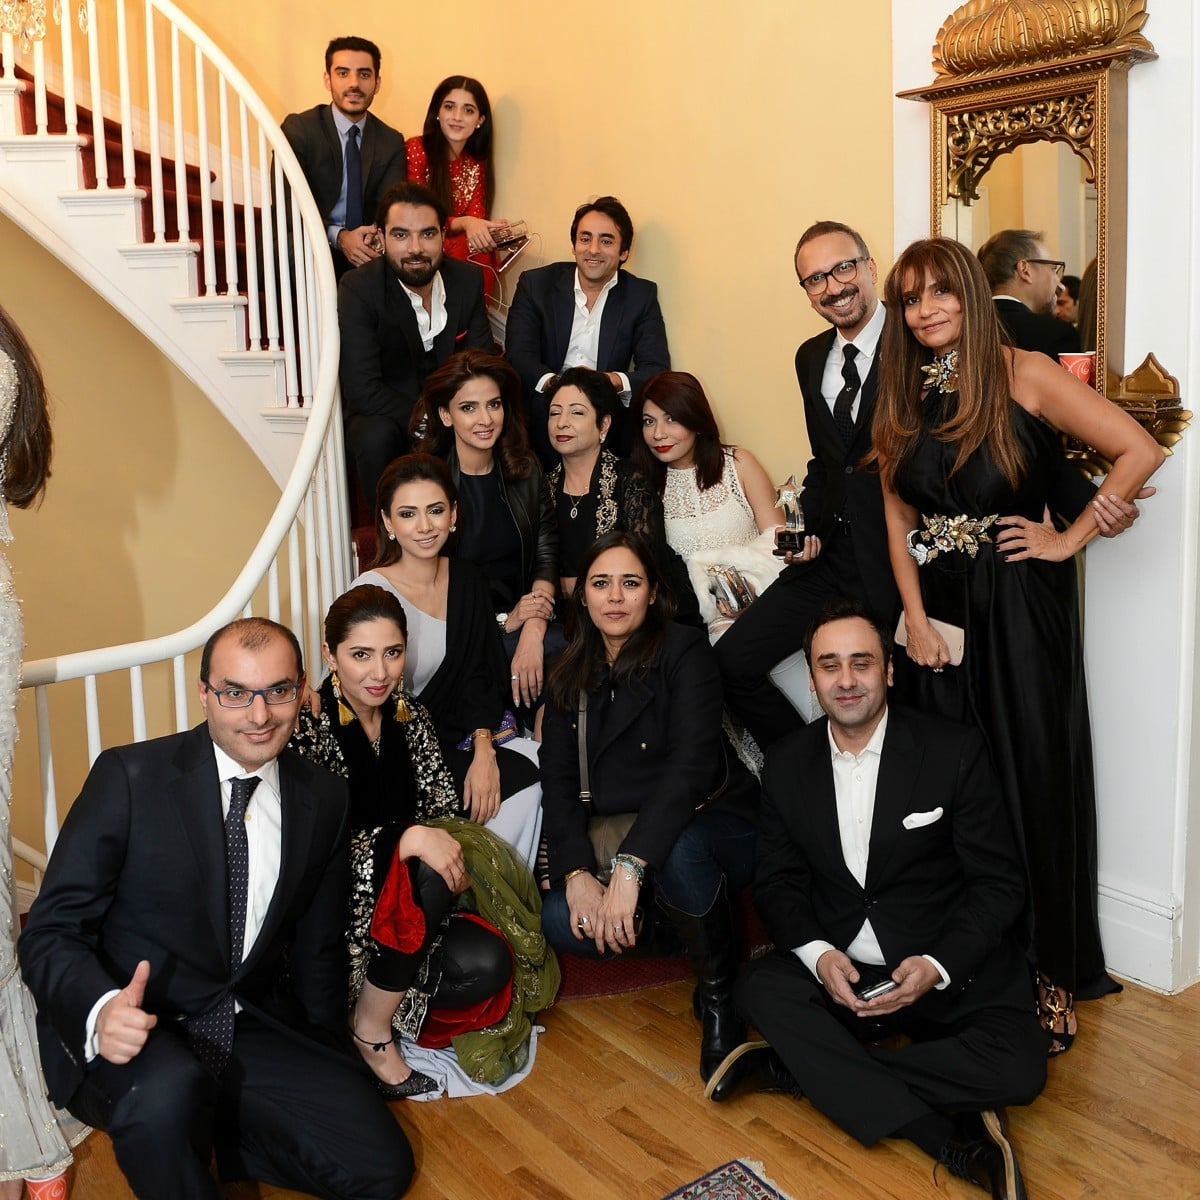 The stars hope to change misconceptions about Pakistan at the Pakistan Film Festival New York